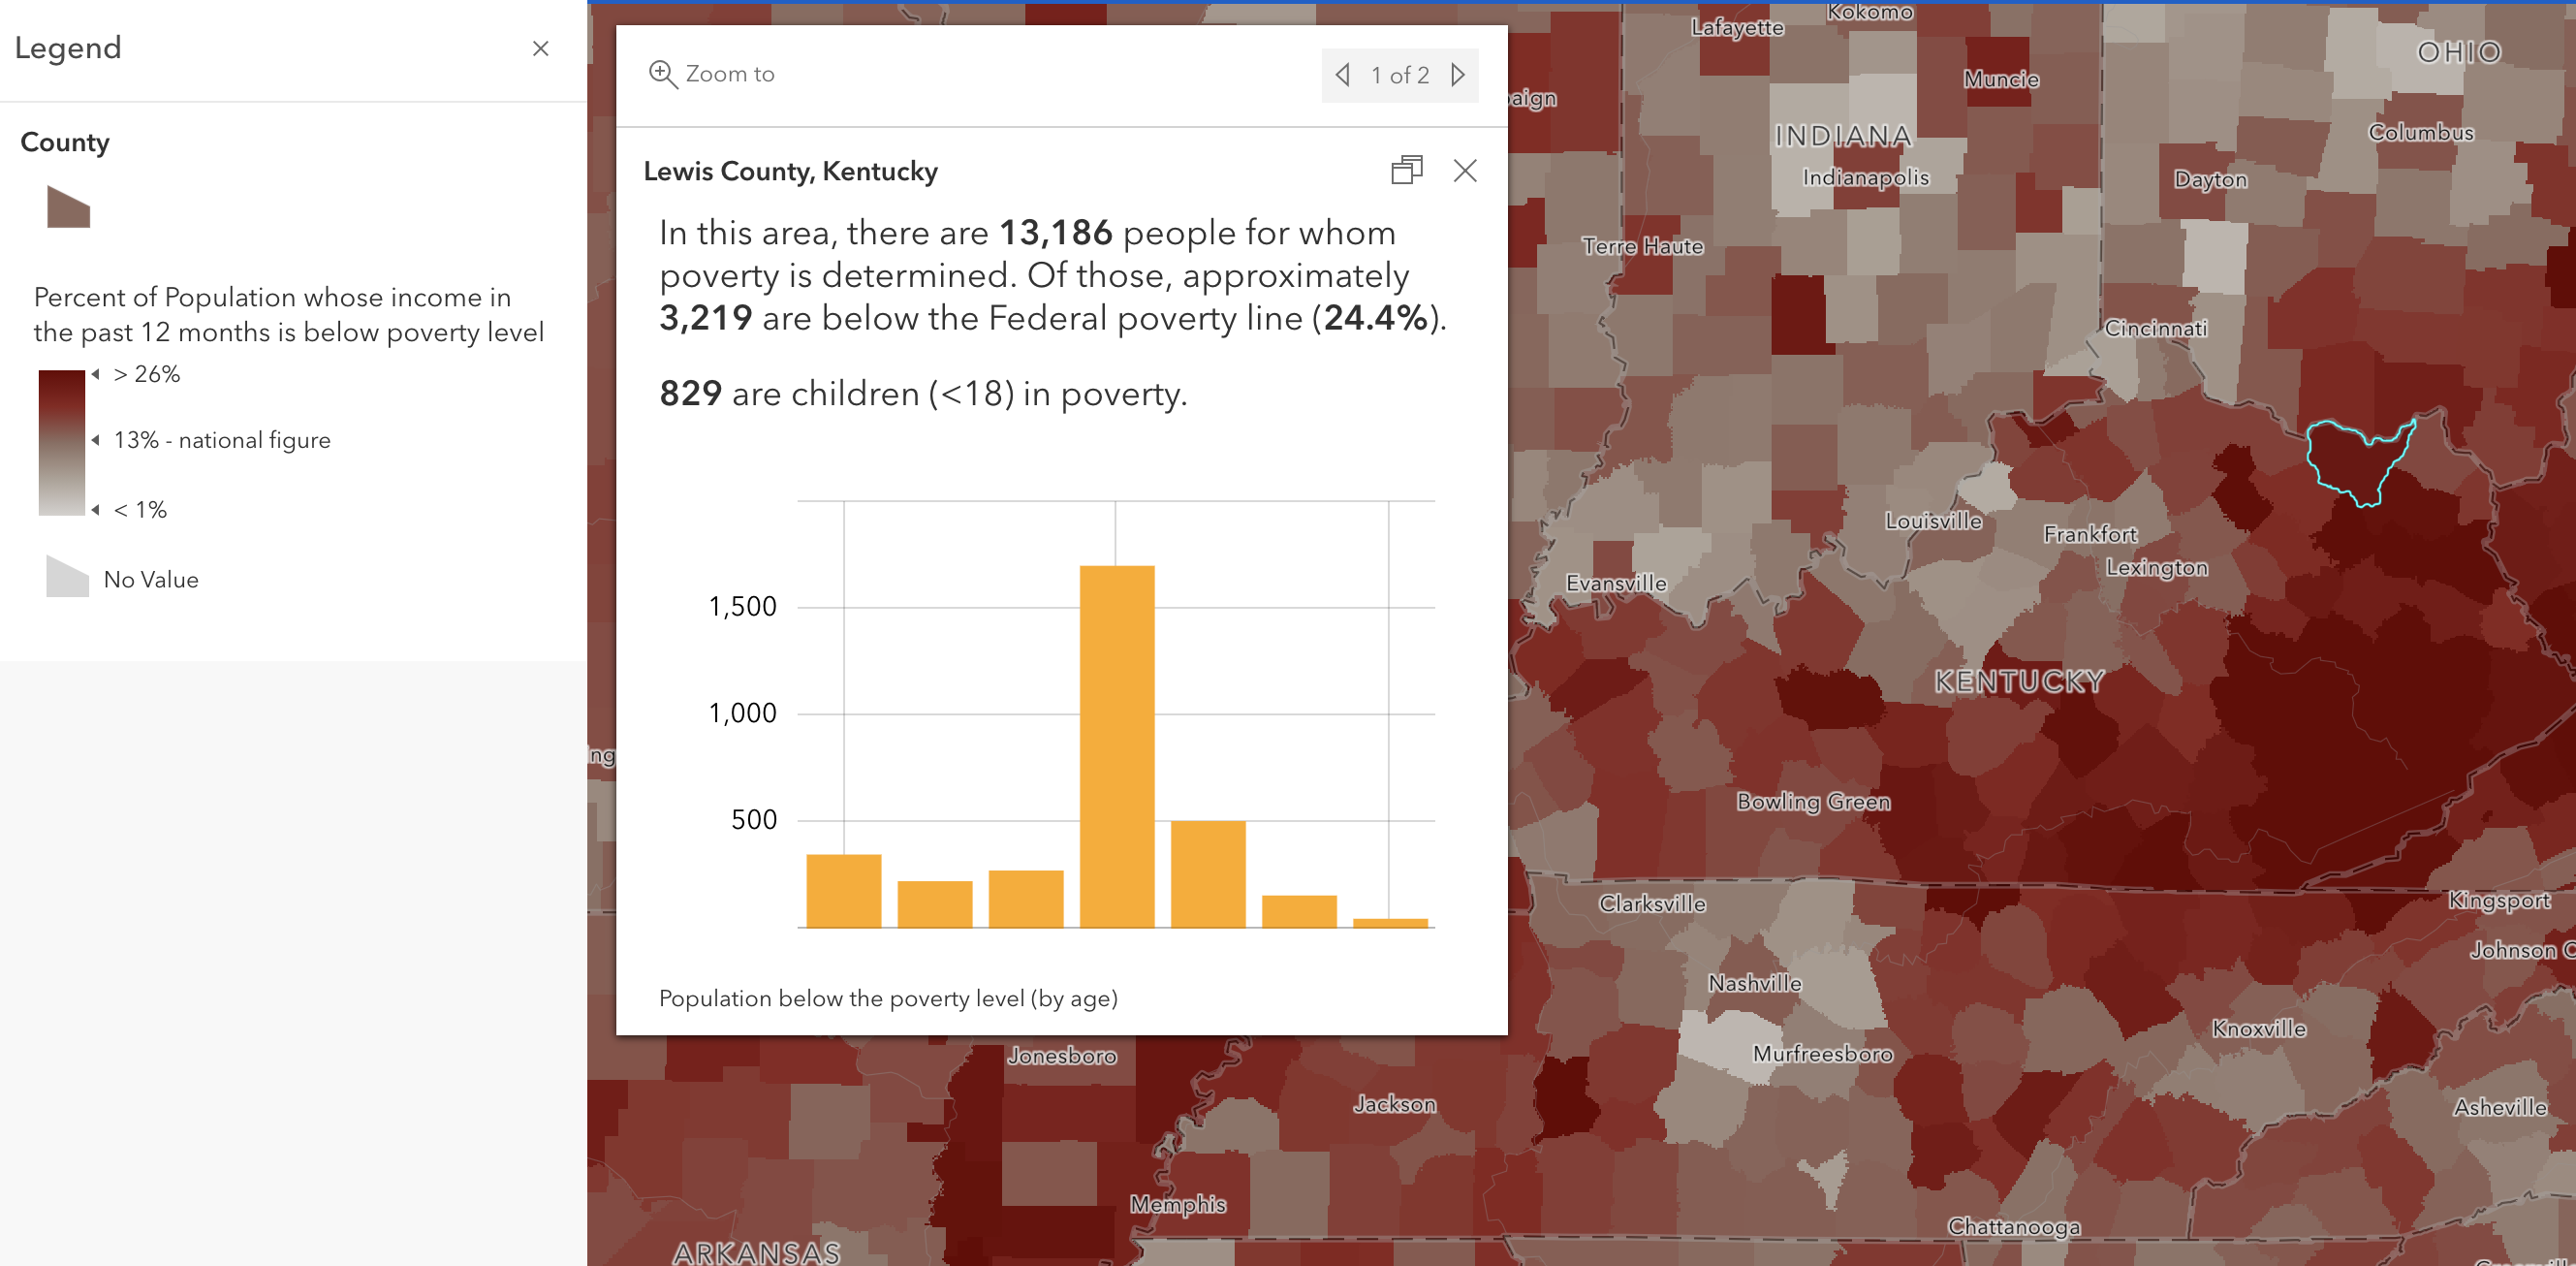 Population Living Below the Federal Poverty Level